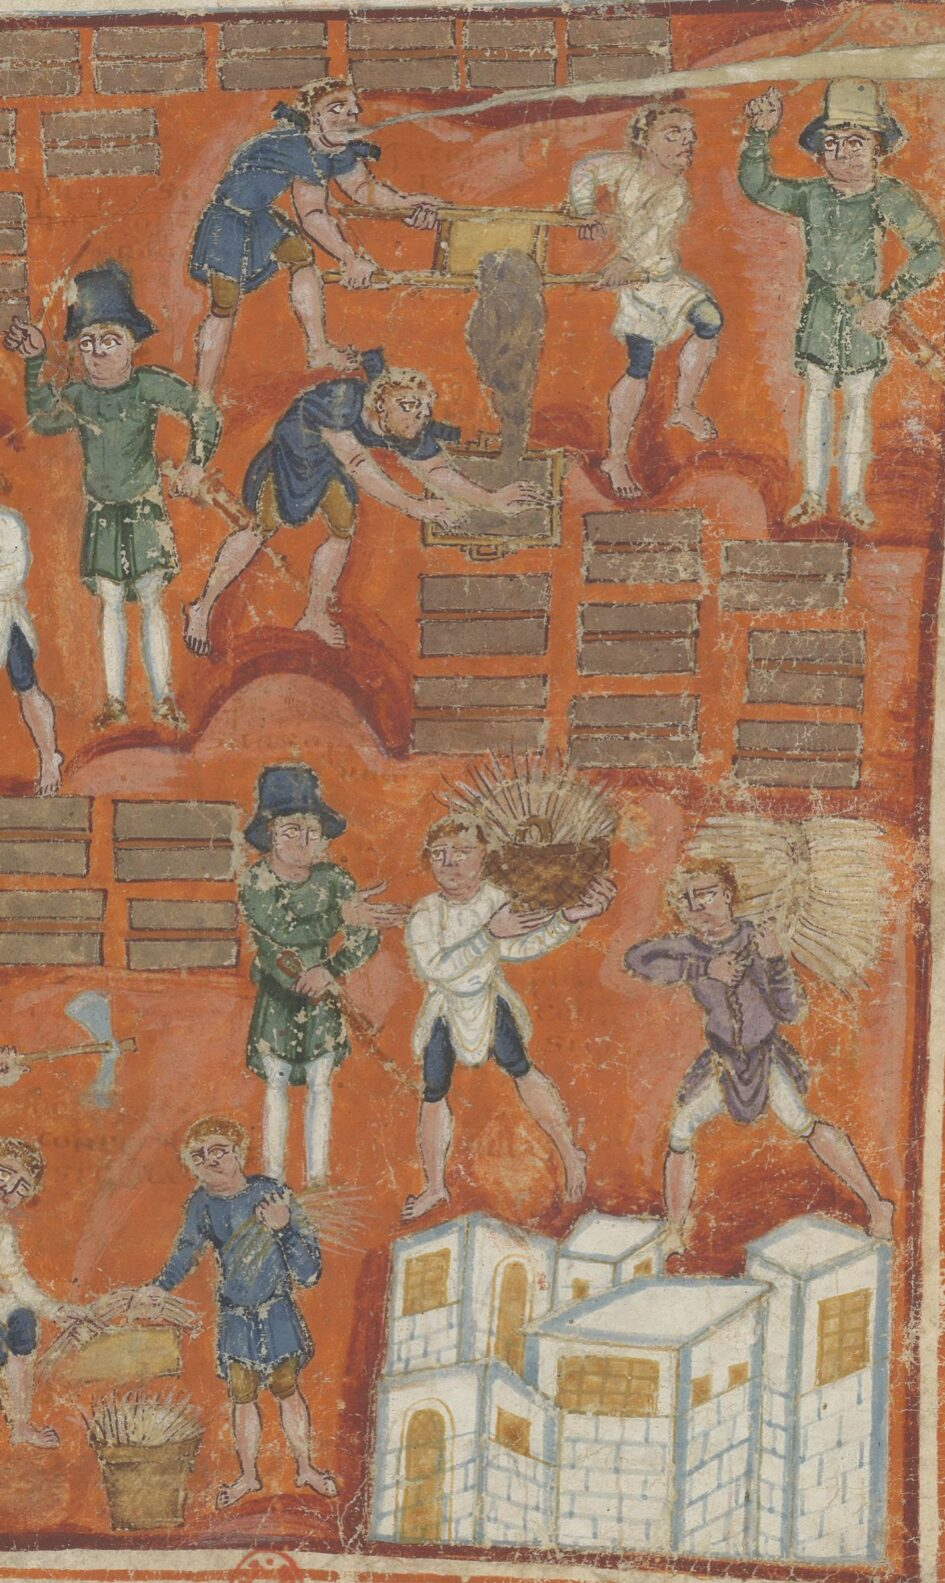 Enslaved Israelites make bricks of clay and straw under the direction of overseers armed with swords and whips.